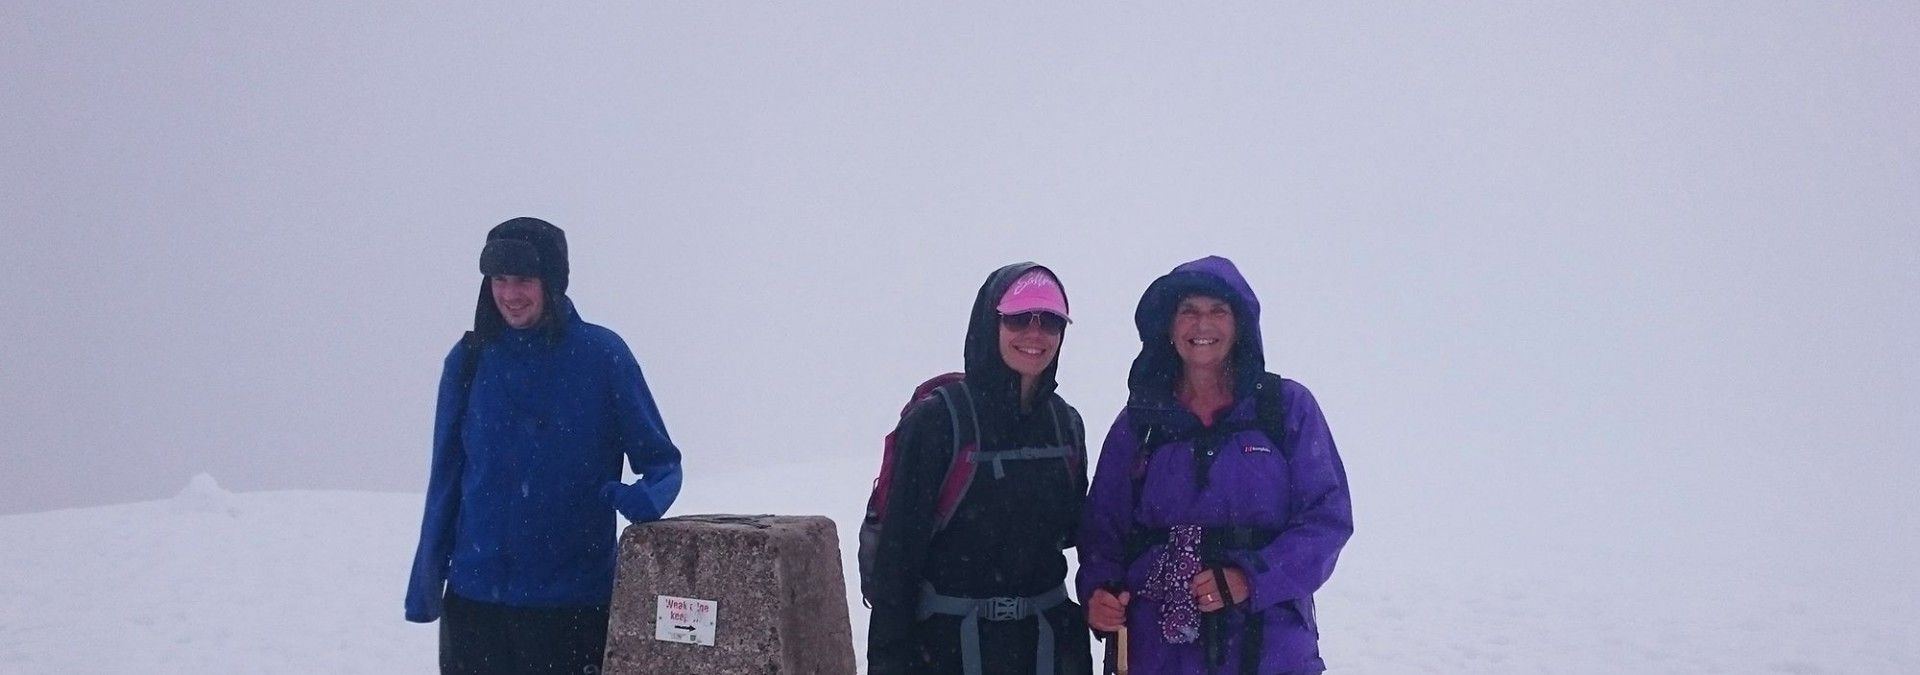 A snowy summit of Ben Nevis